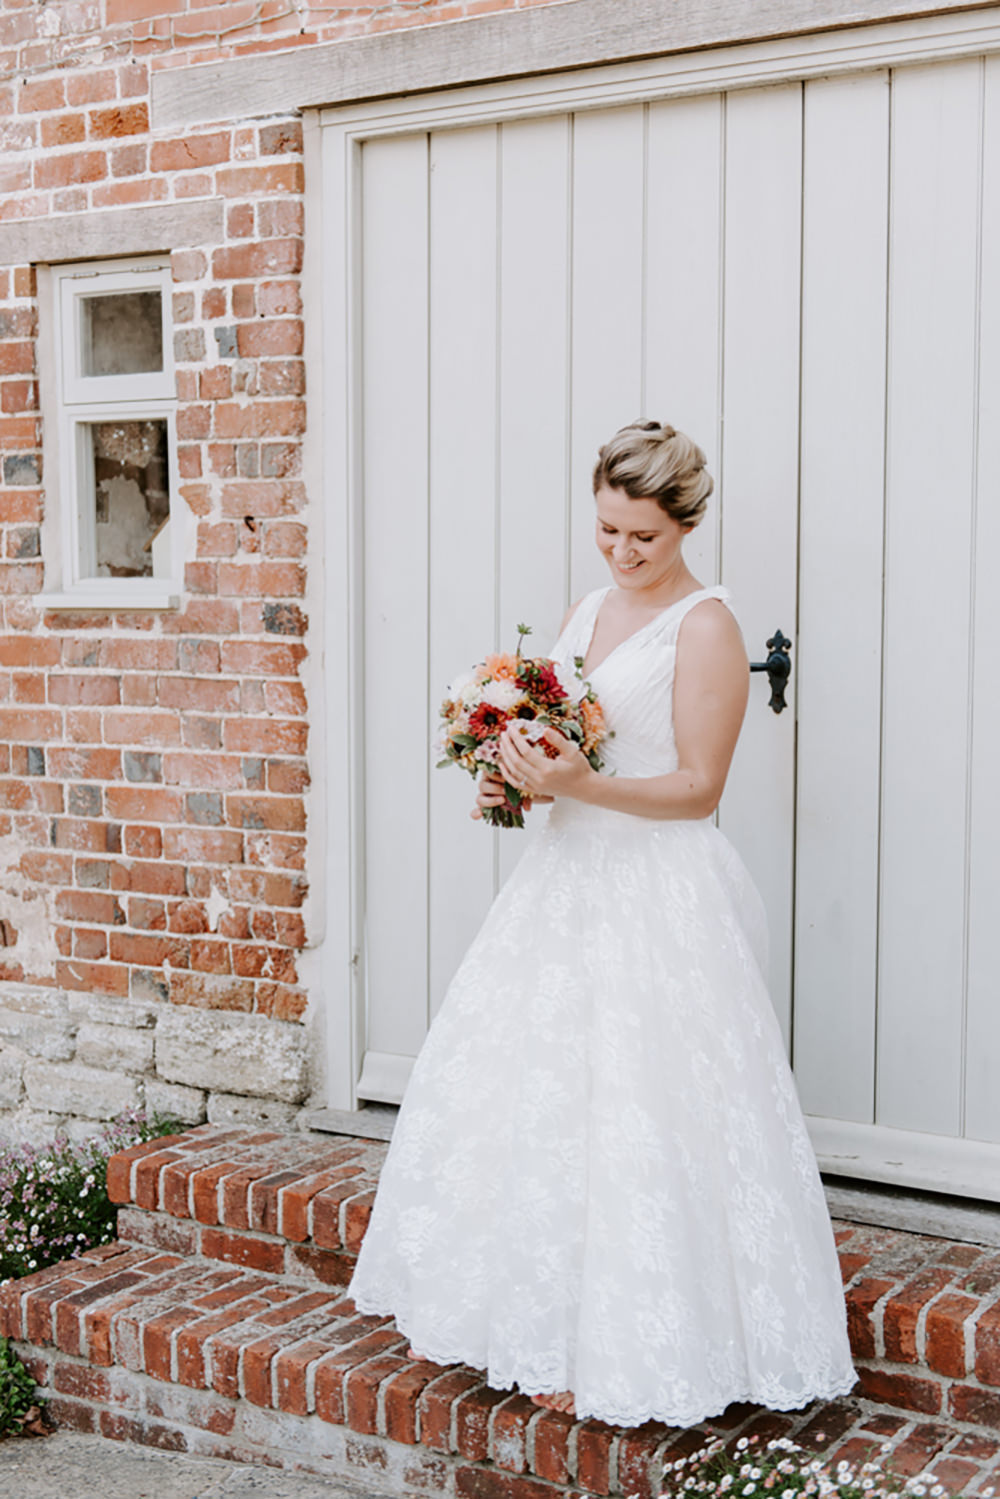 Bride Bridal Dress Gown Lace Straps Ethical Wedding Ideas Sadie Osborne Photography